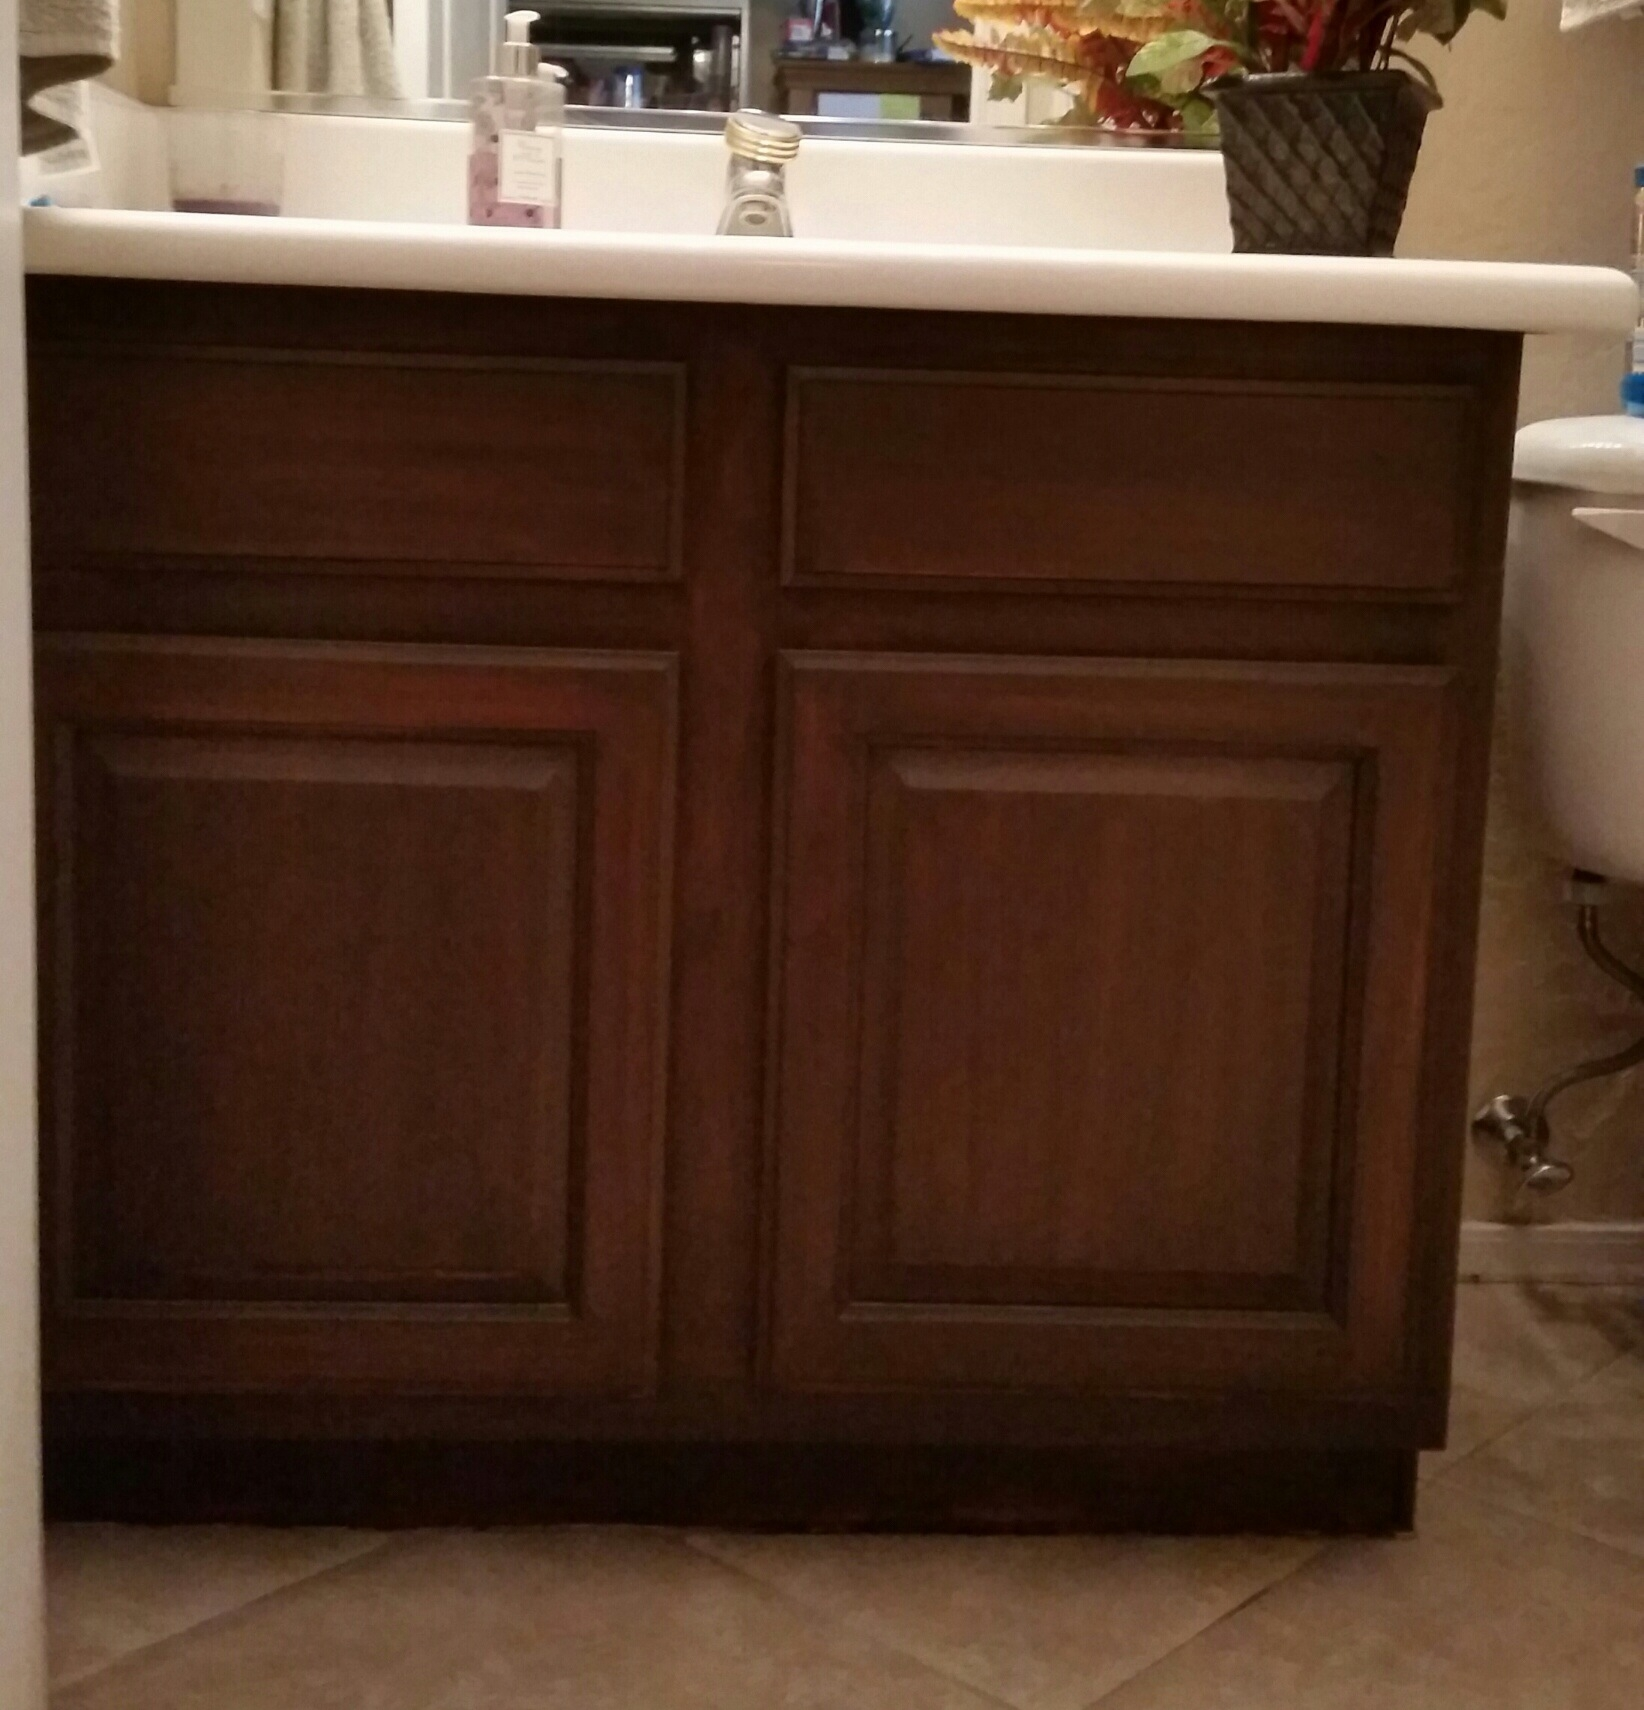 Staining White Bathroom Cabinets Darkerchoosing the right dark gel stain java gel stain vs walnut